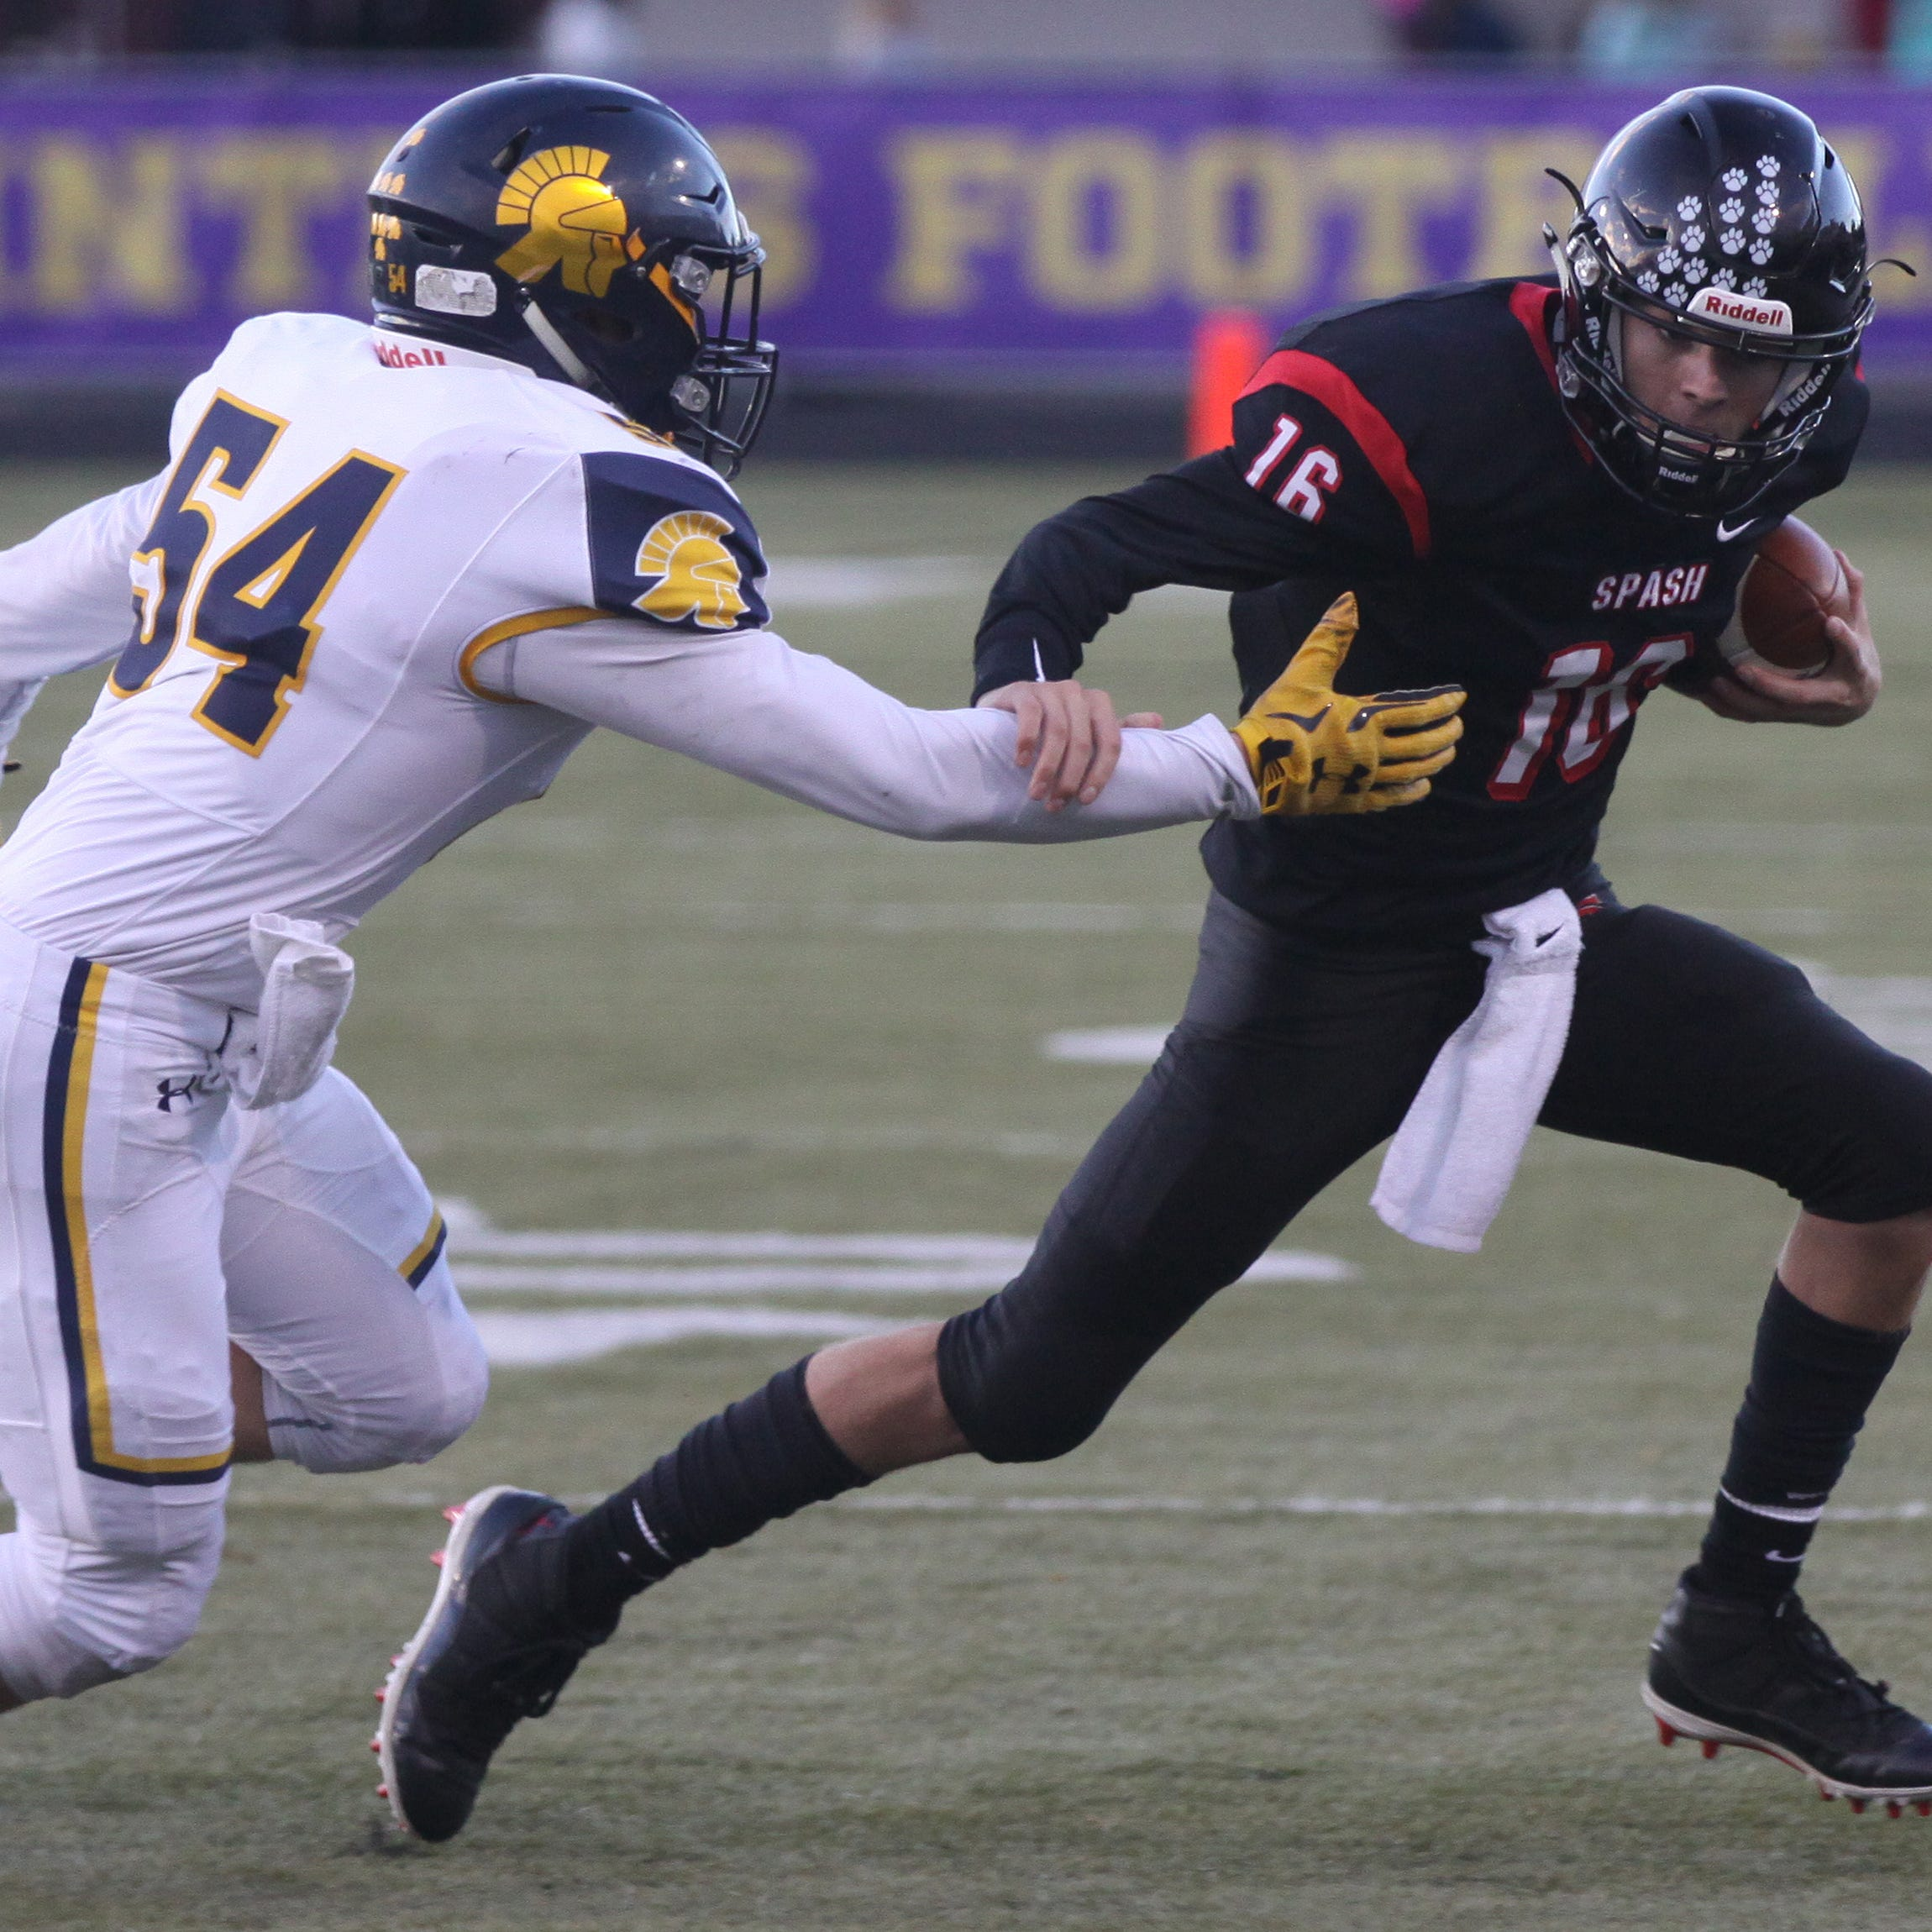 High school football: SPASH breaks into win column with shutout over Wausau West